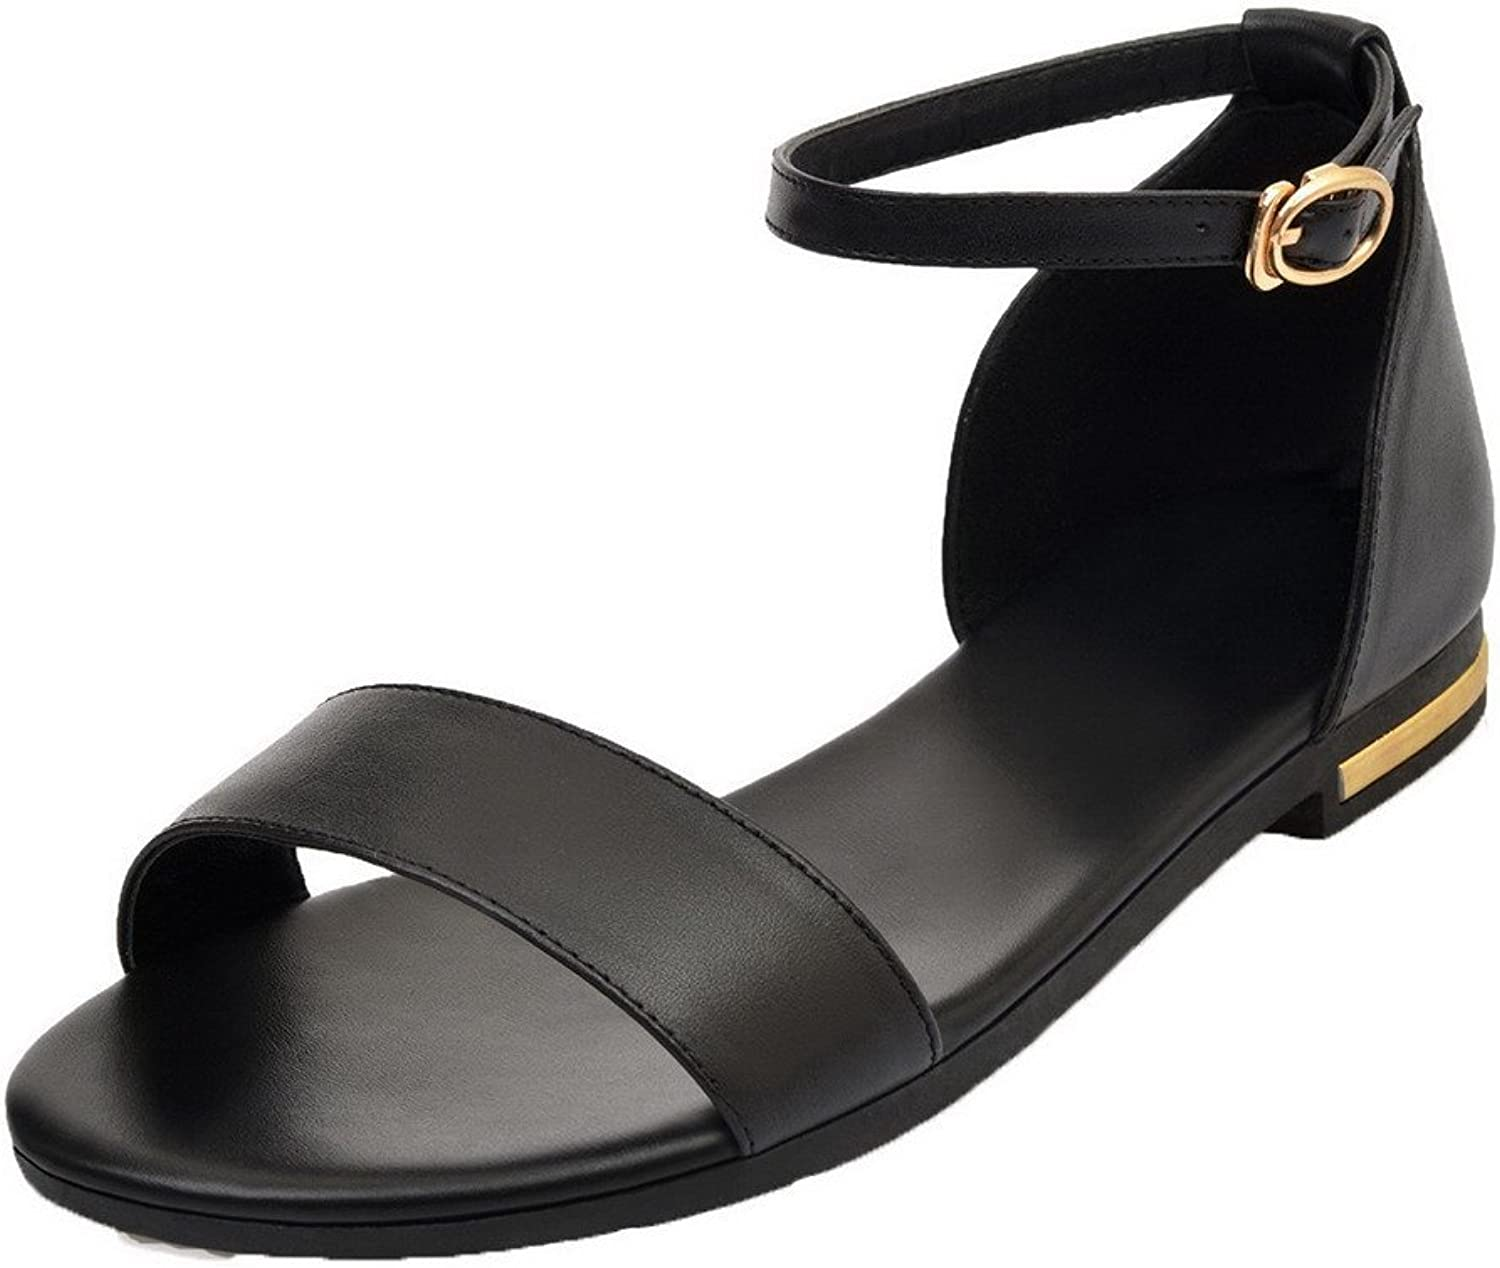 AmoonyFashion Women's Pu Buckle Open Toe Solid Sandals